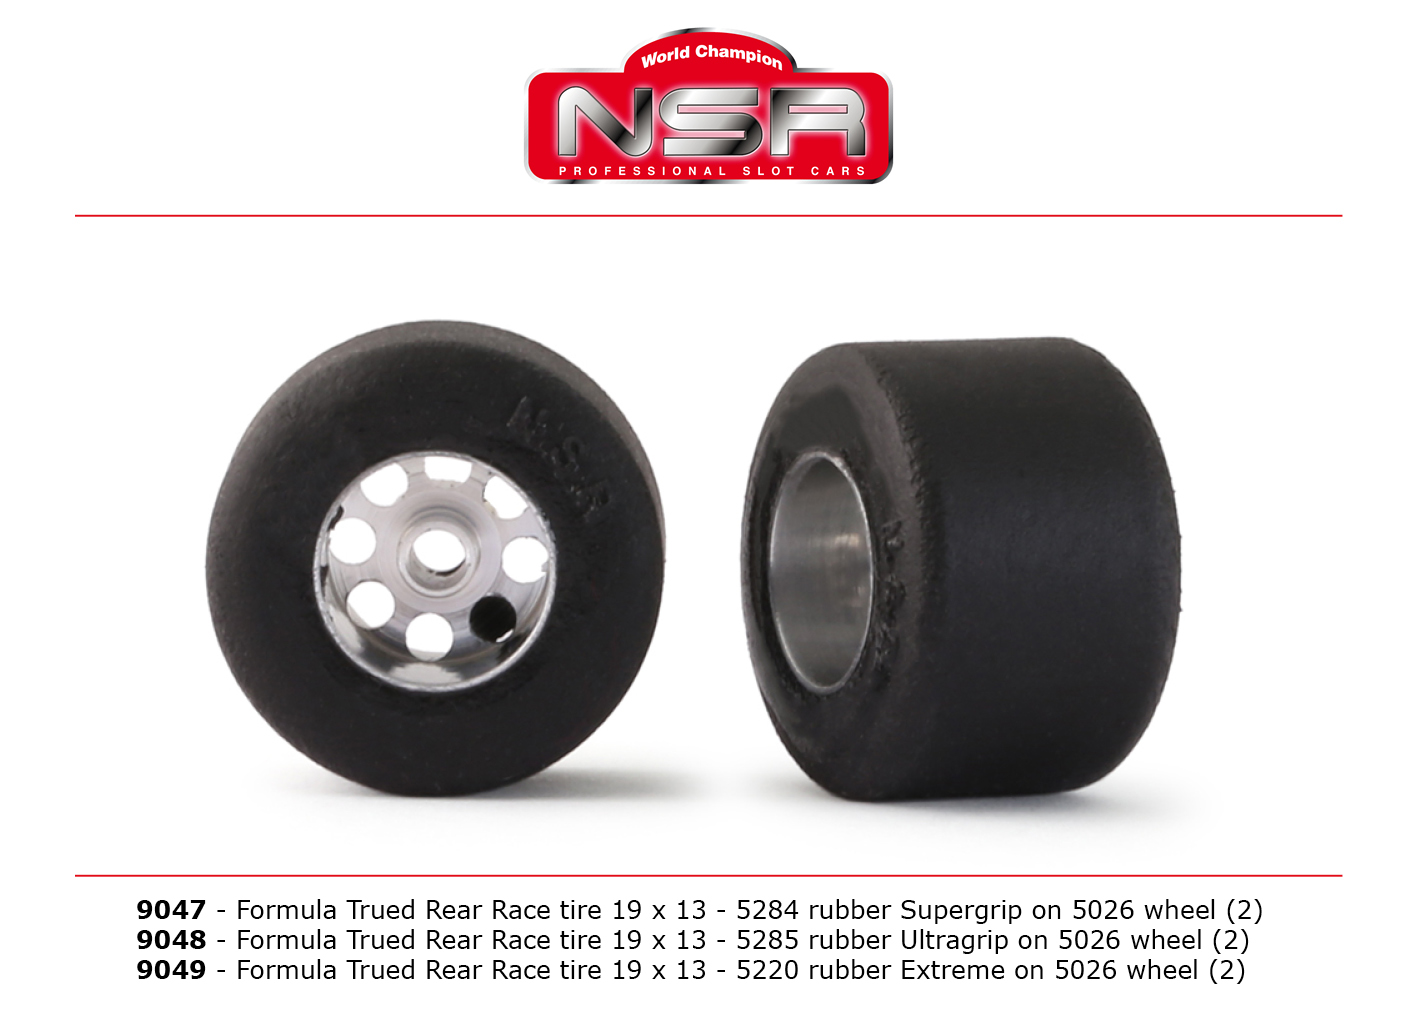 NSR9047 3/32 Formula Trued 5287 Rear Supergrip 19x13 on Wheel